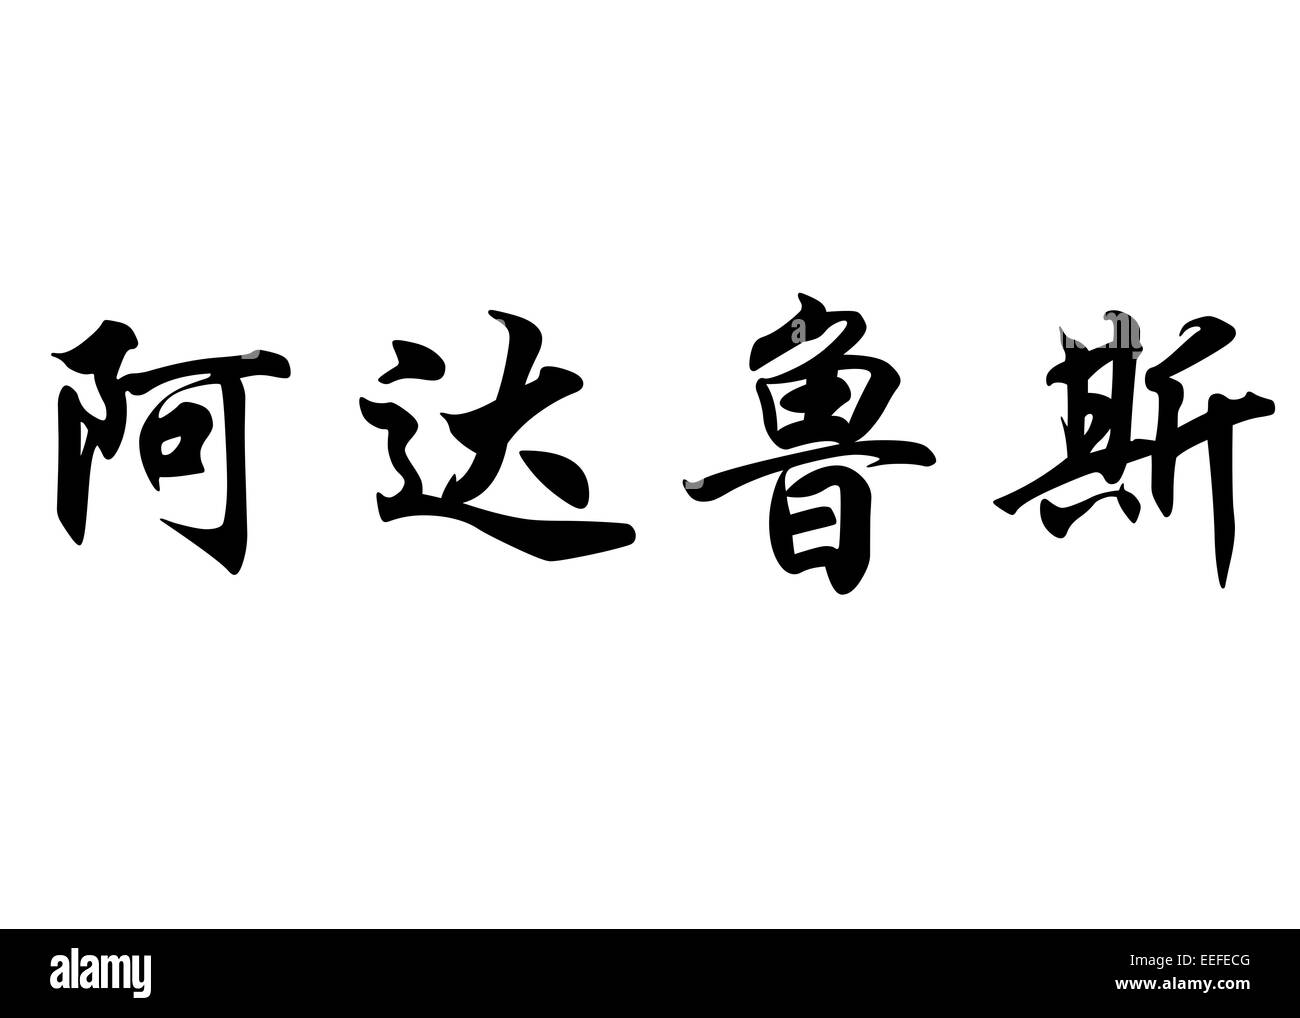 English name Adaluz in chinese kanji calligraphy characters